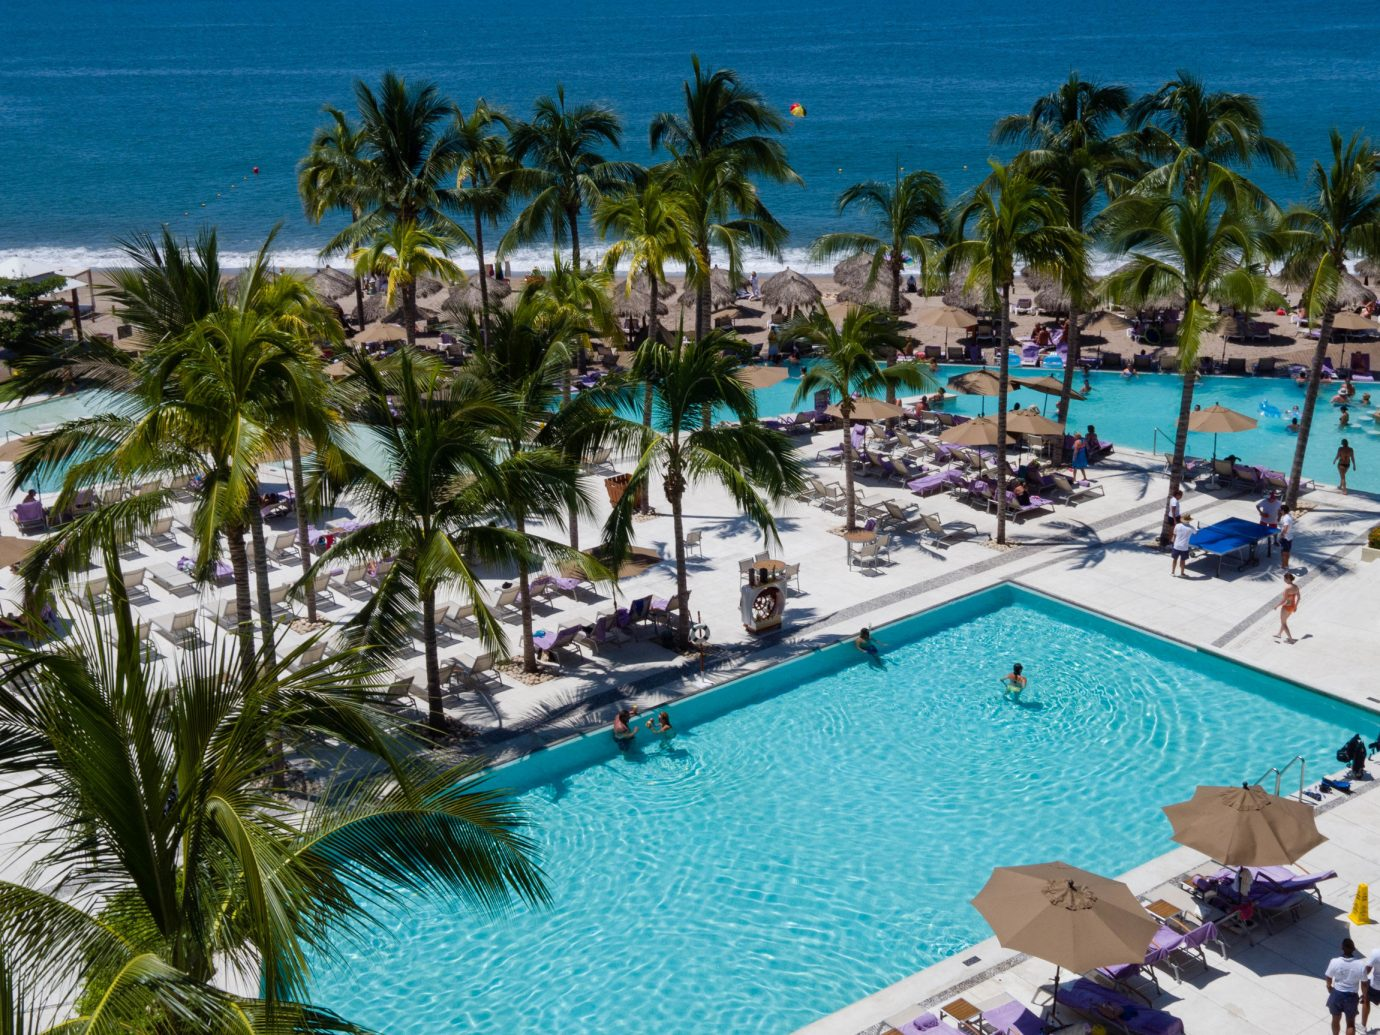 Hotels tree palm Resort outdoor leisure swimming pool vacation caribbean marina Water park estate resort town Beach Pool Lagoon plant lined furniture